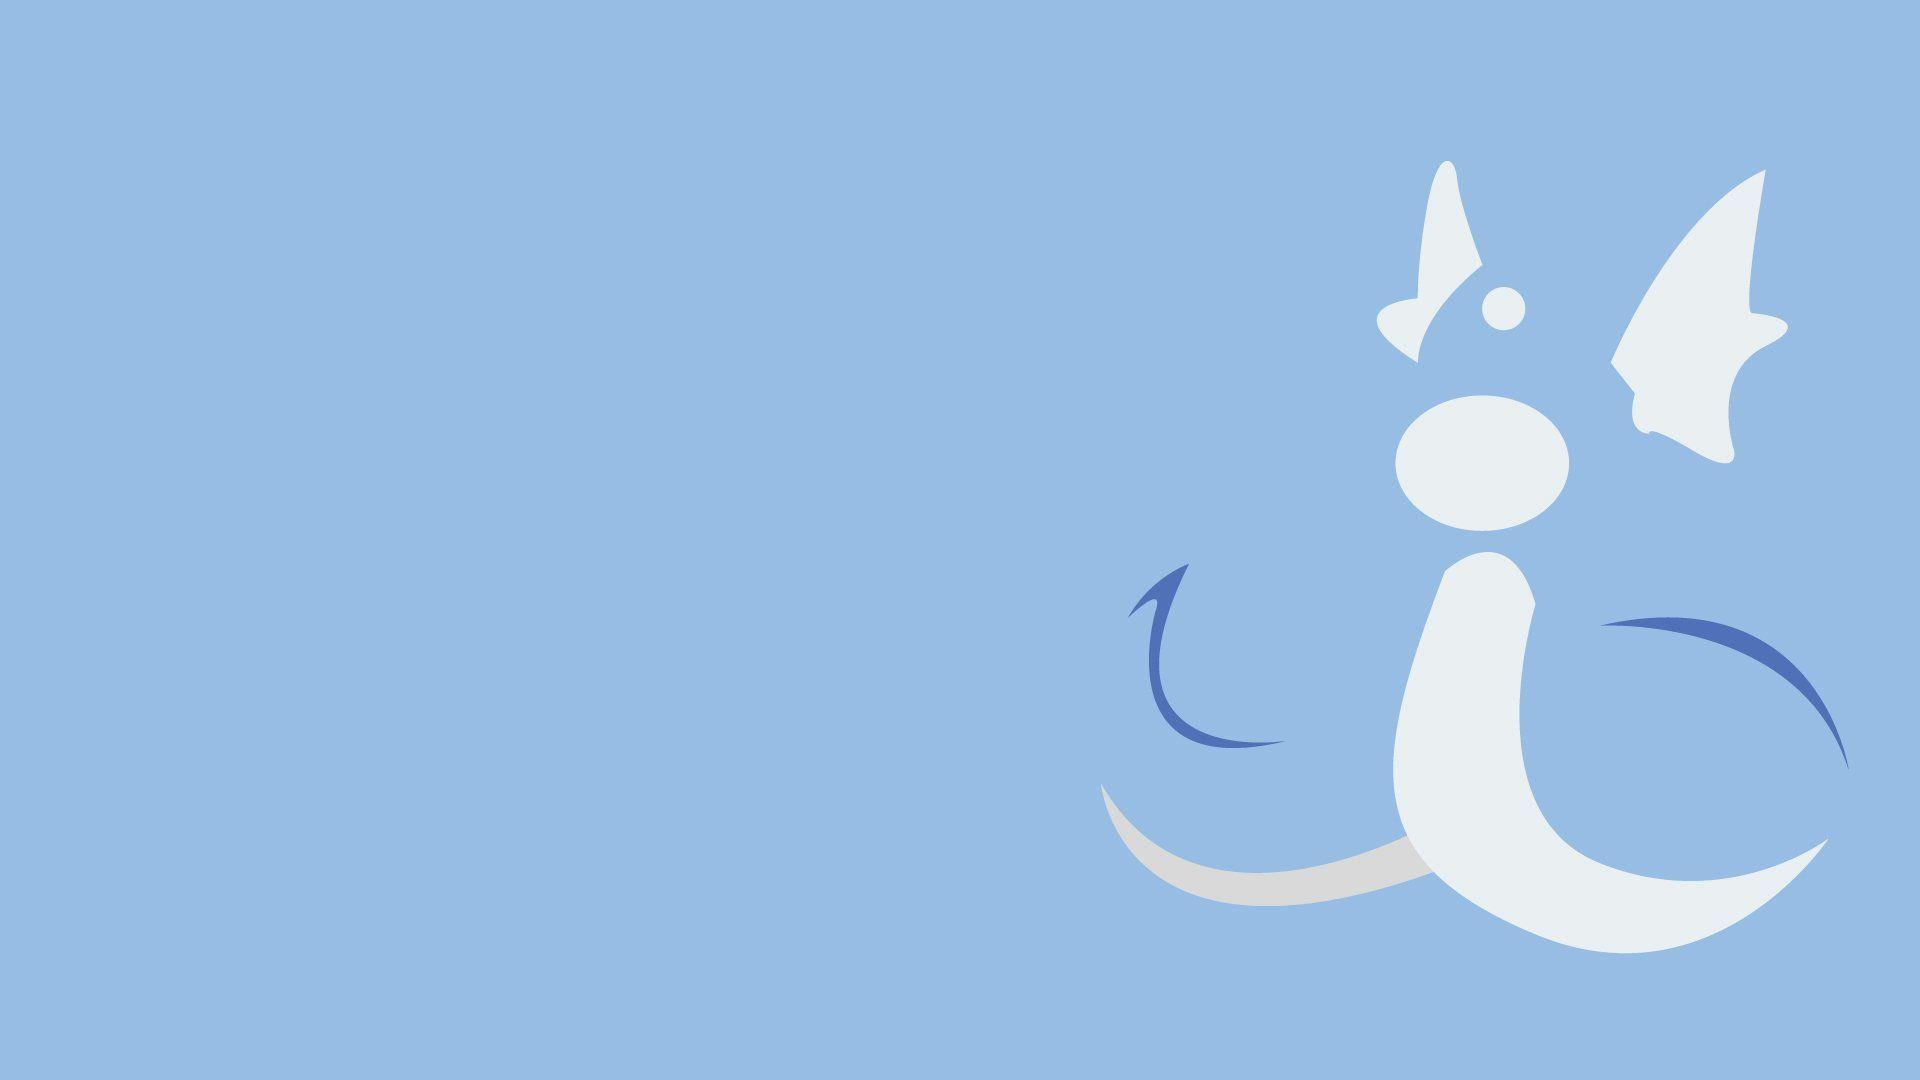 13 Dratini (Pokémon) HD Wallpapers | Background Images - Wallpaper ...